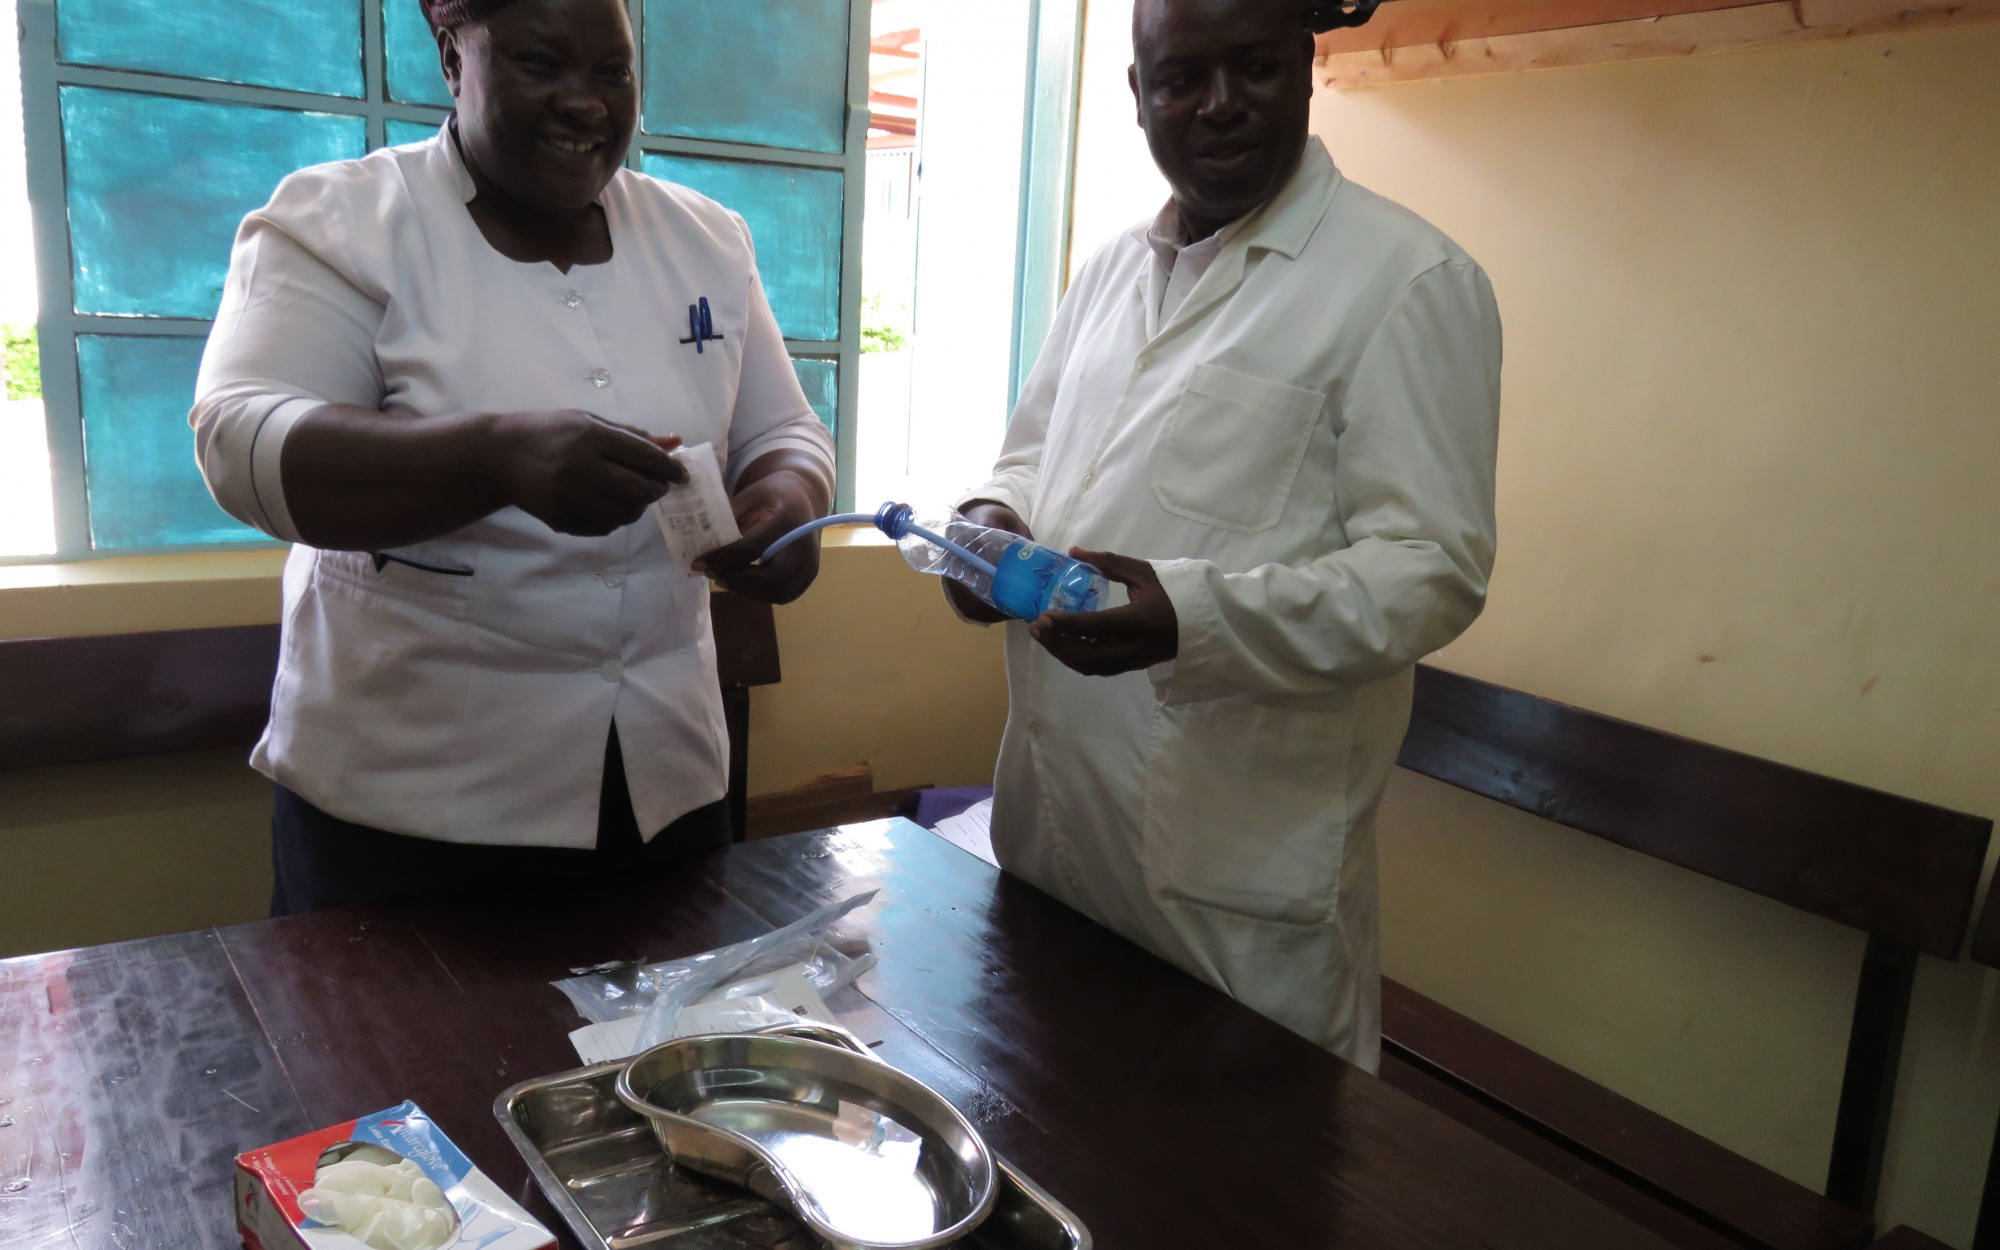 Health worker mentorship: building skills to save lives